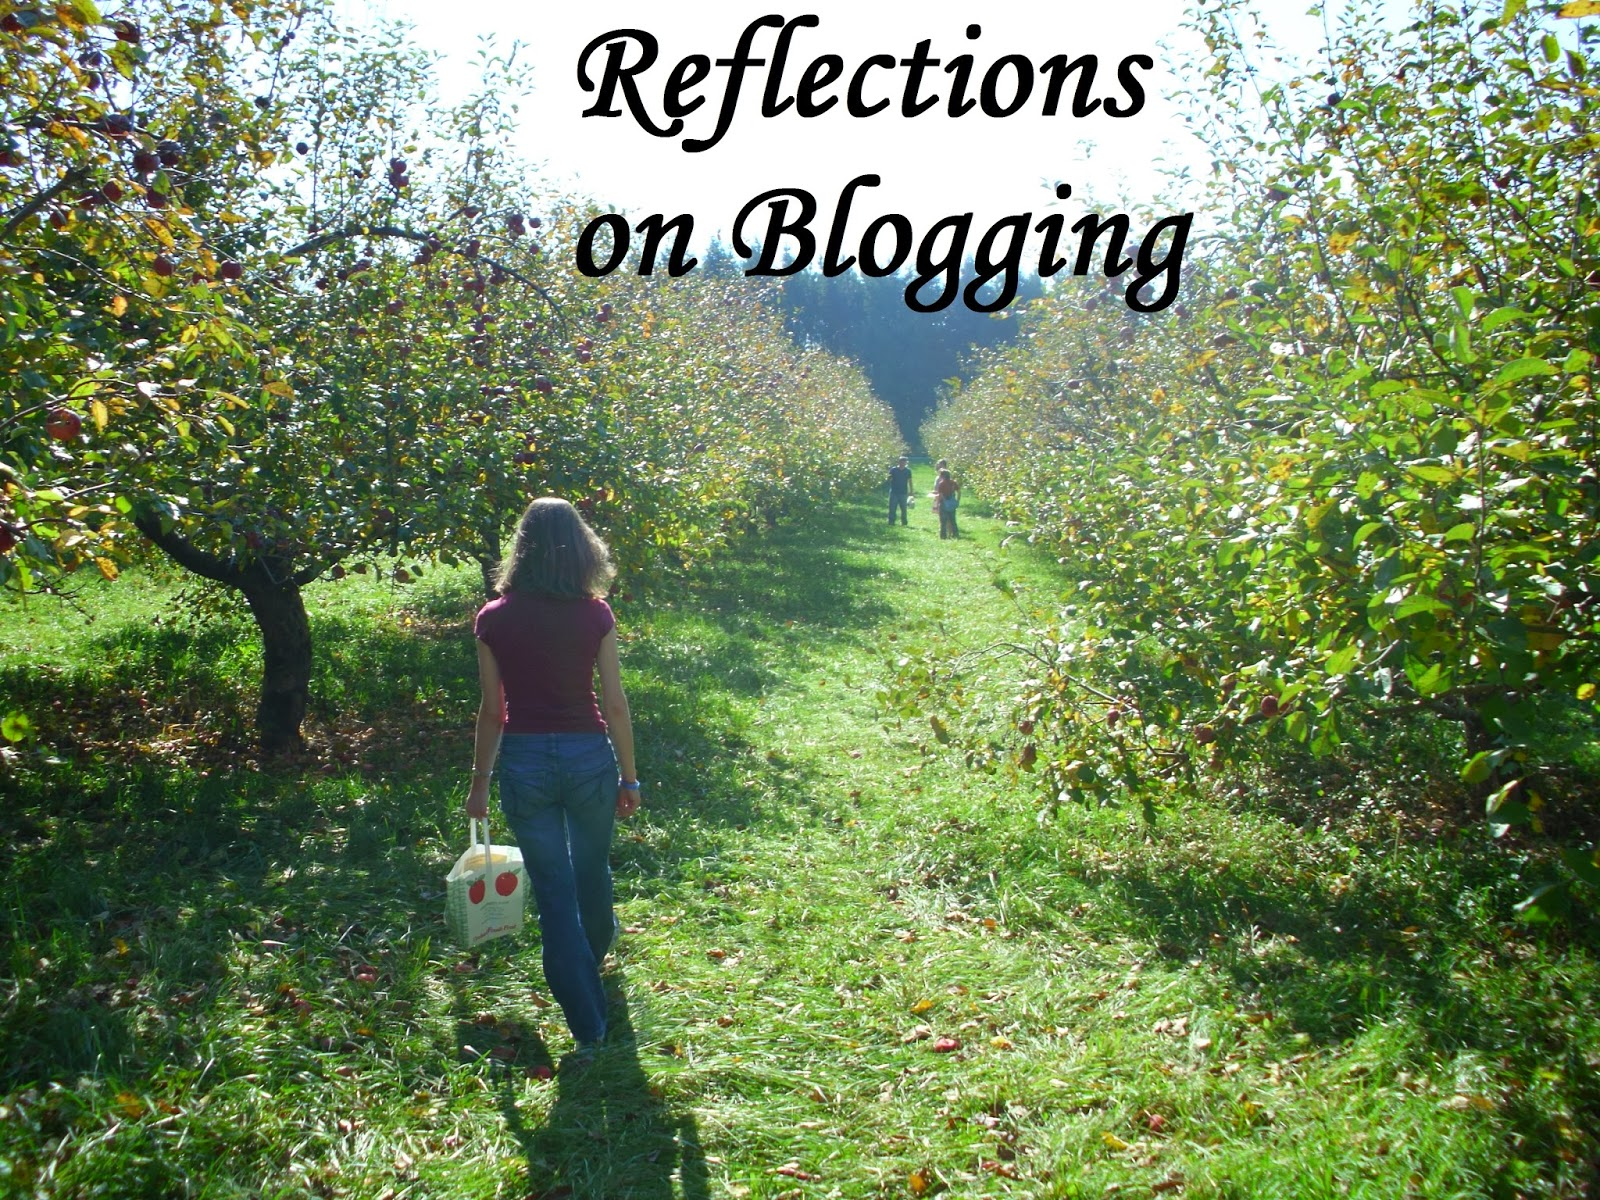 reflections on blogging